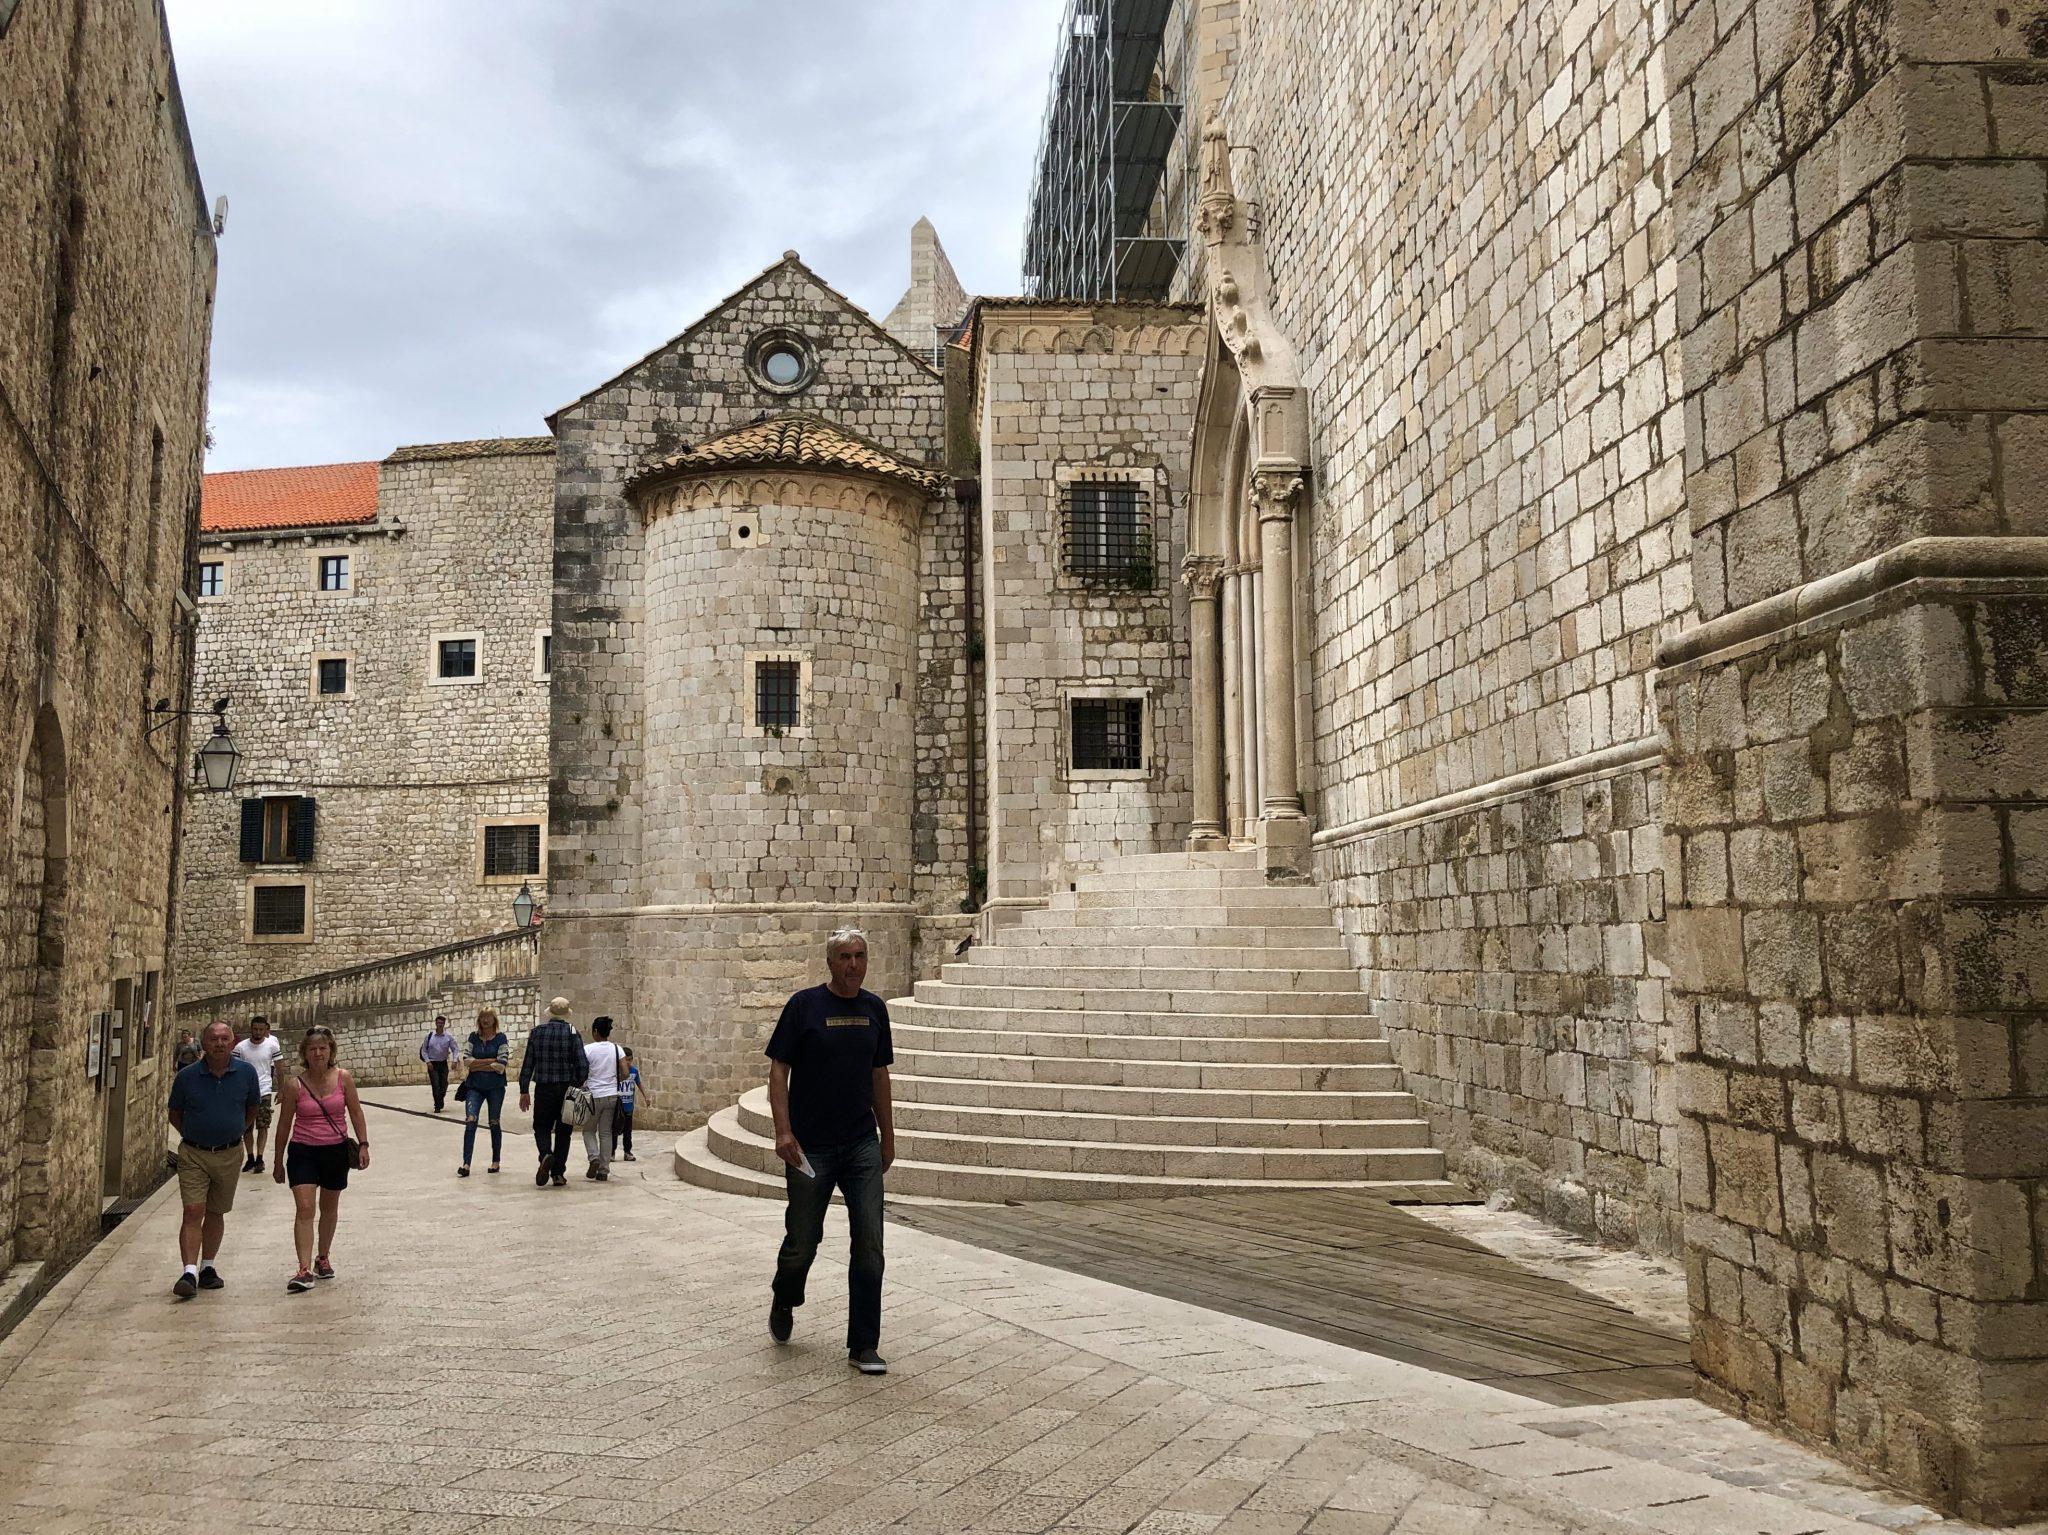 Games of Thrones Dubrovnik filming locations include market scenes here